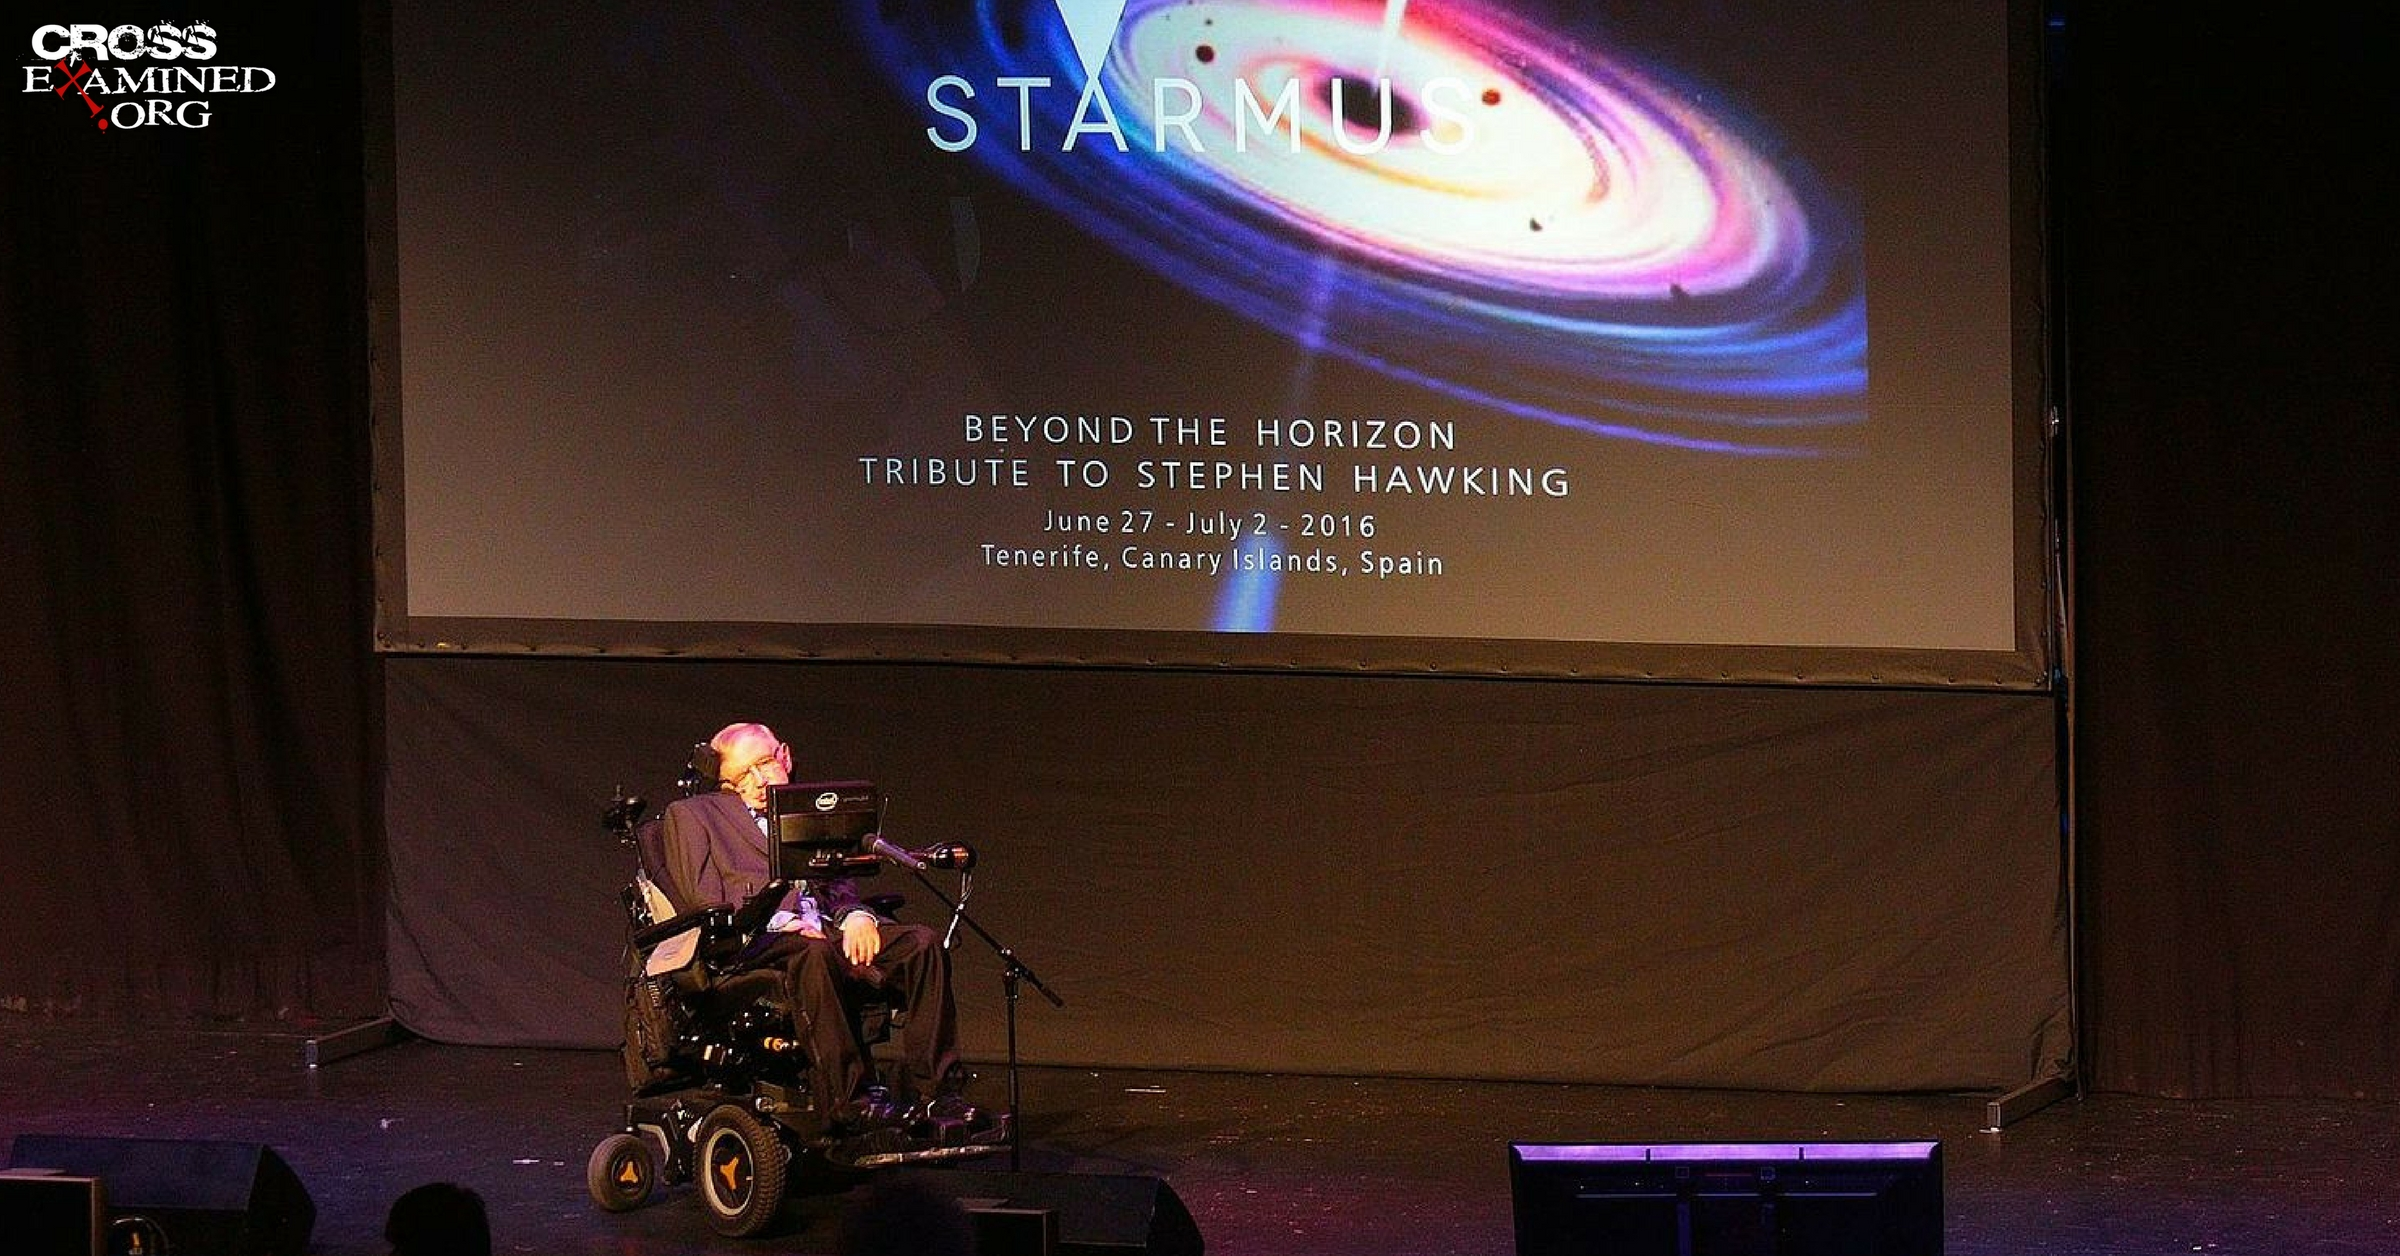 Scientists Like Stephen Hawking Believe in God?